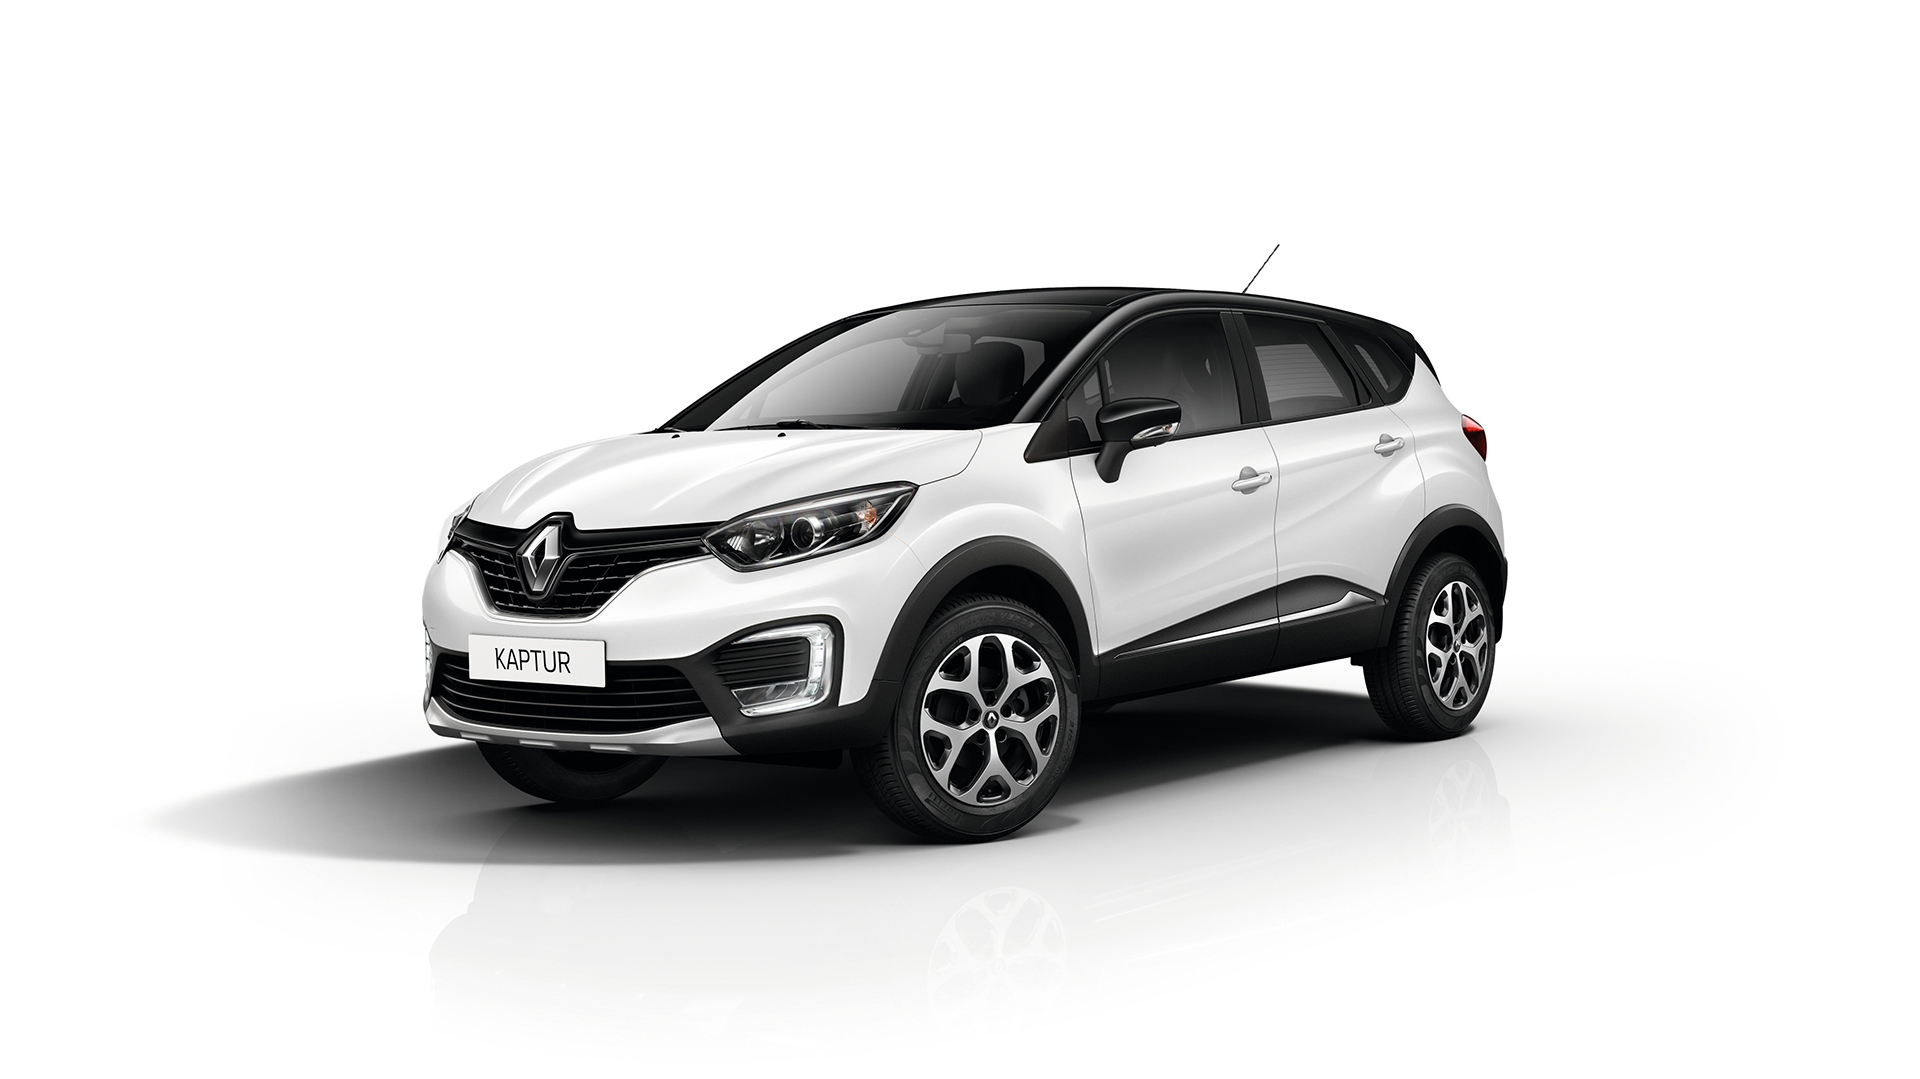 Renault Kaptur - 2016 - front side-face